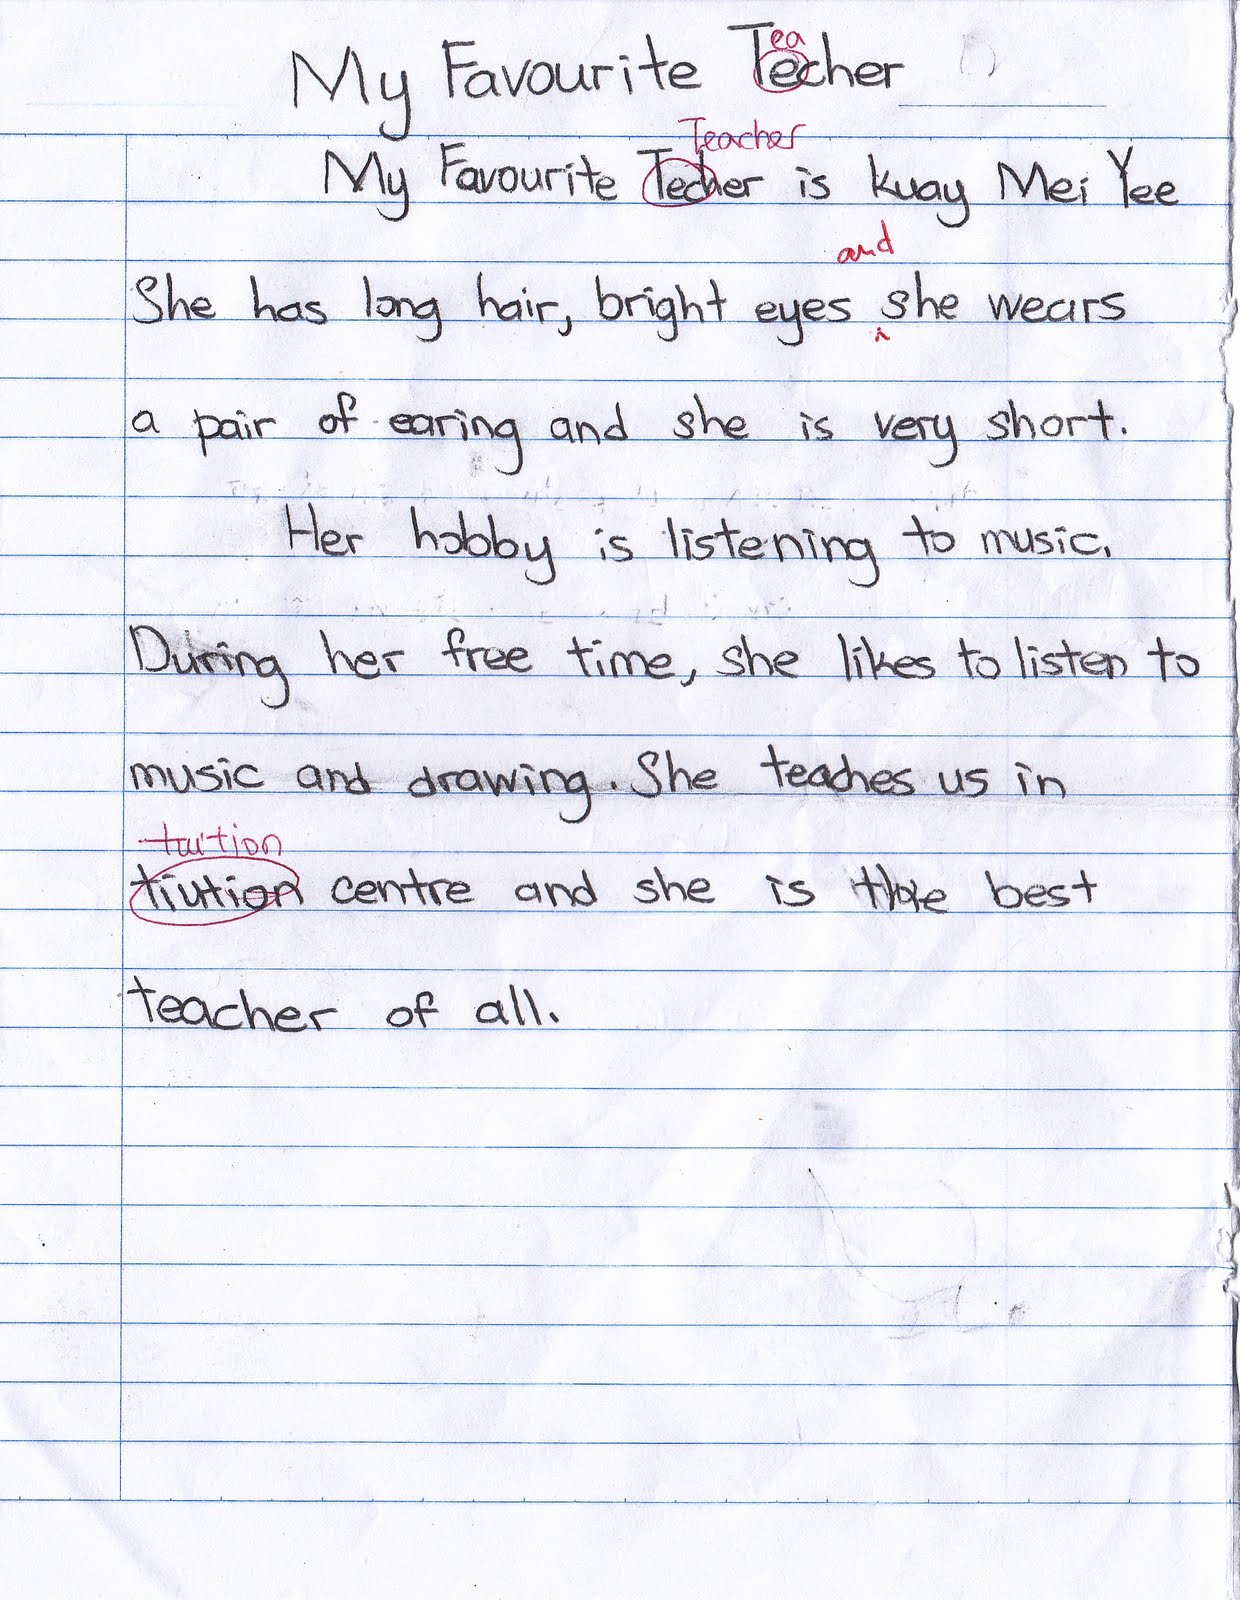 expository essay about falling in love Types of love essay examples what is love everyone at some point in their lives has experienced love, whether they were loved or have loved love seems to be the main underlying goal that we all strive for in is it just being with the person you care about the most or is it really something complicated and intricate.